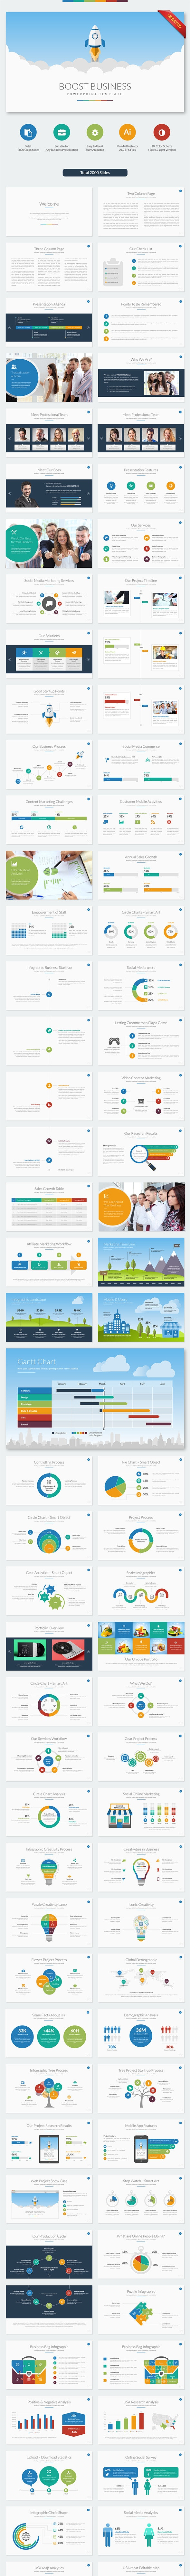 Boost Business PowerPoint Template - Business PowerPoint Templates